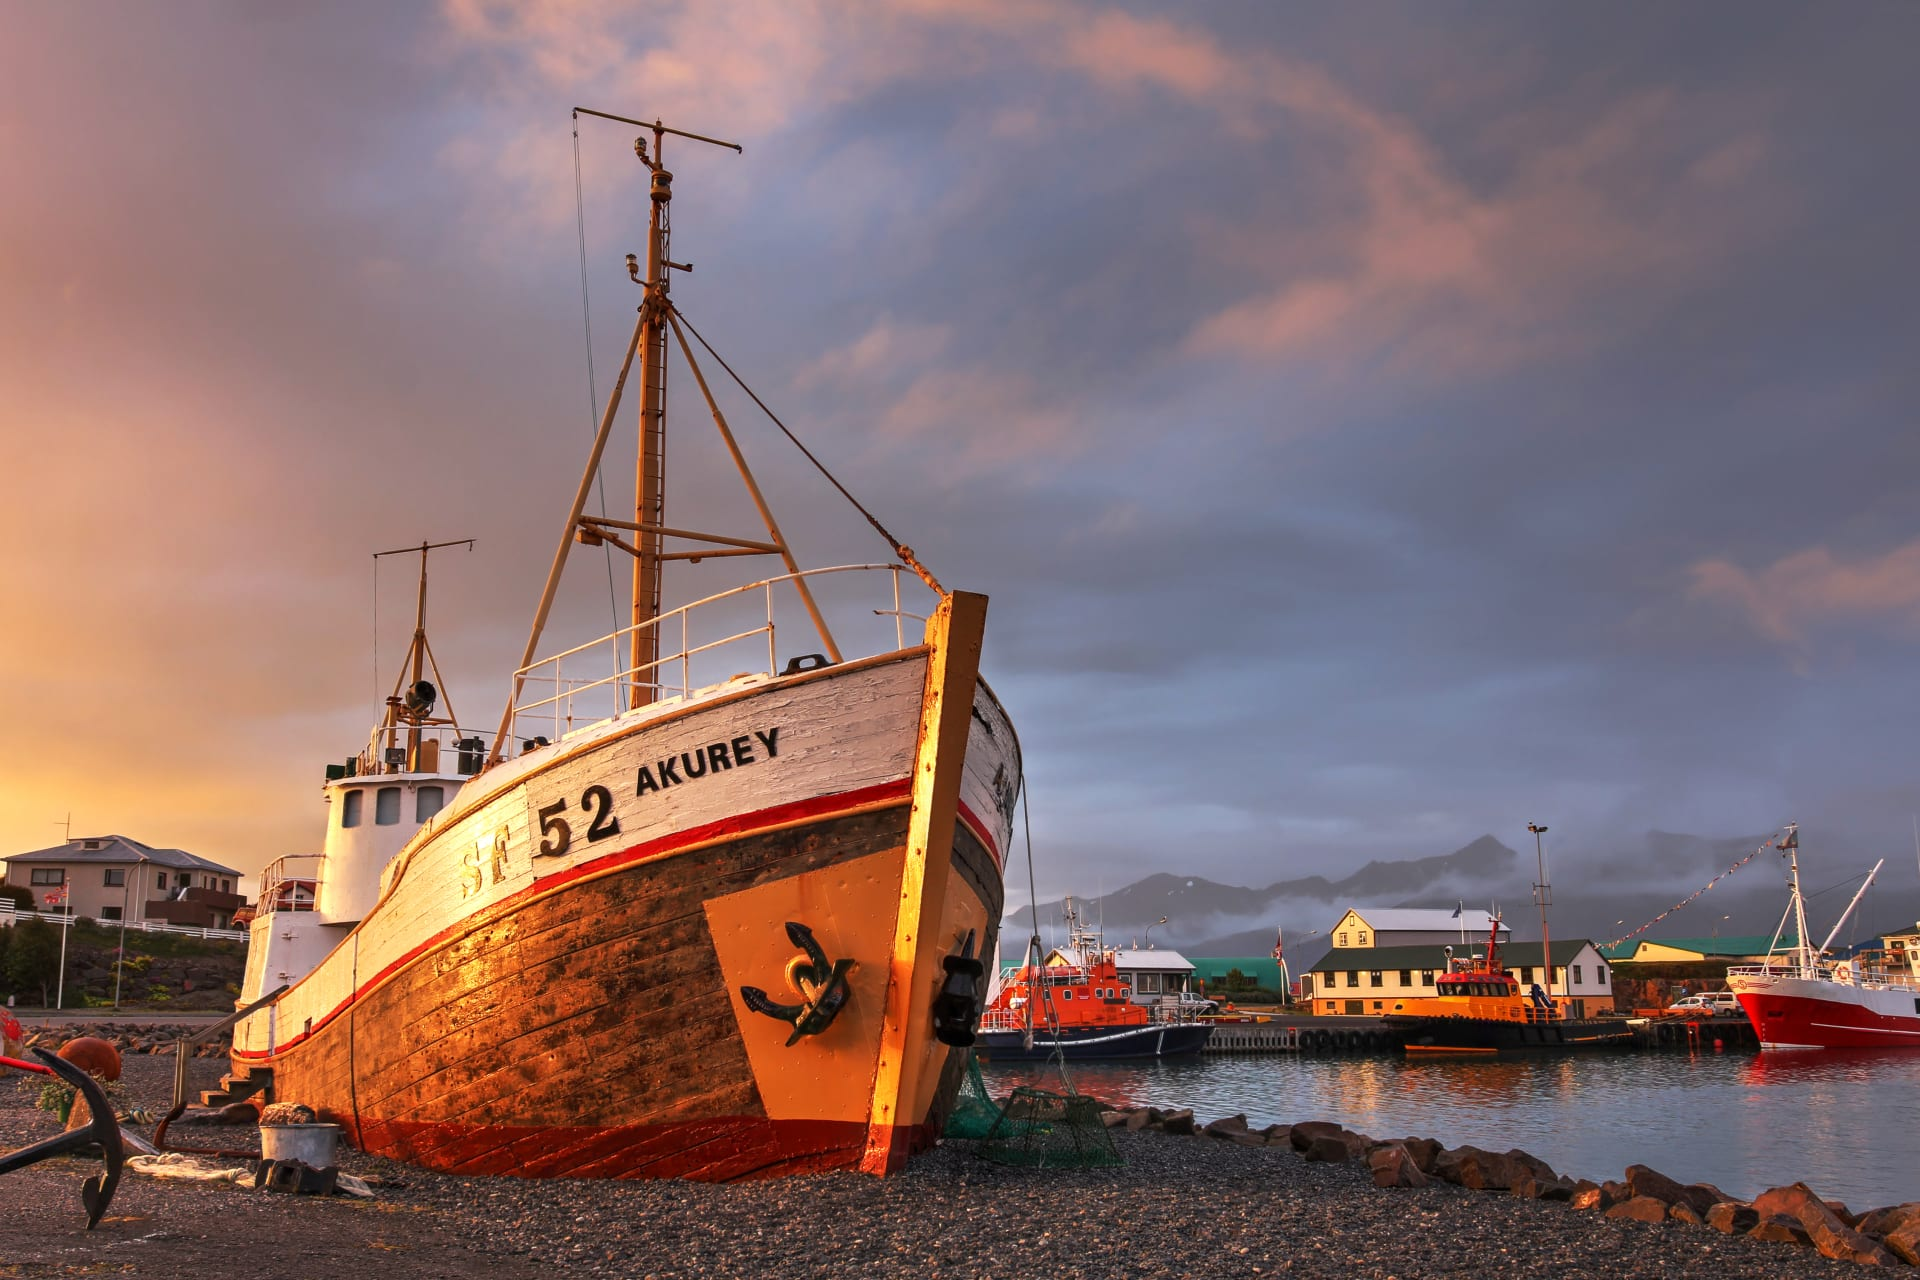 Southeast Iceland - A thriving old town at the foot of Europes largest glacier.